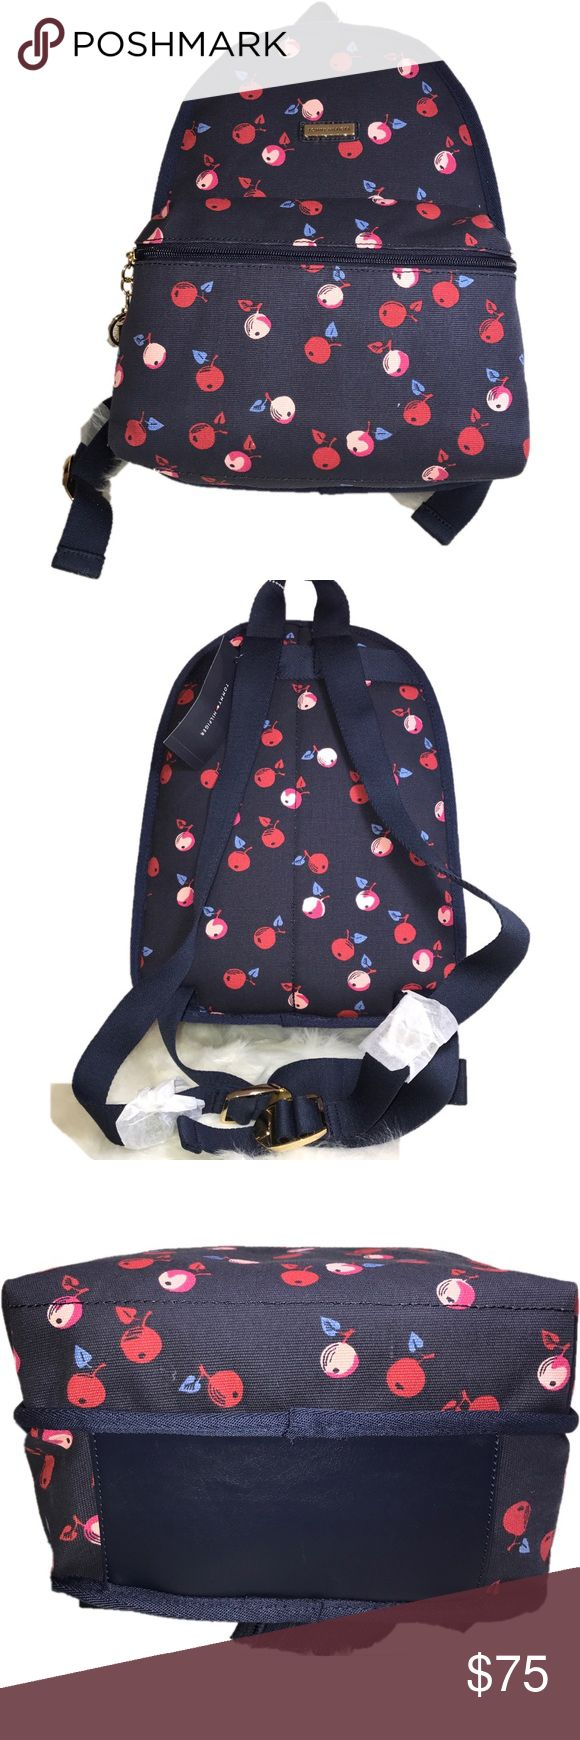 SALE!NWT TOMMY HILFIGER BLUE W/ CHERRIES BACKPACK New with tag Tommy Hilfiger backpack for only US$75 cute and trendy trendy  100% authentic Best to use this coming school year!🌸 Tommy Hilfiger Bags Backpacks